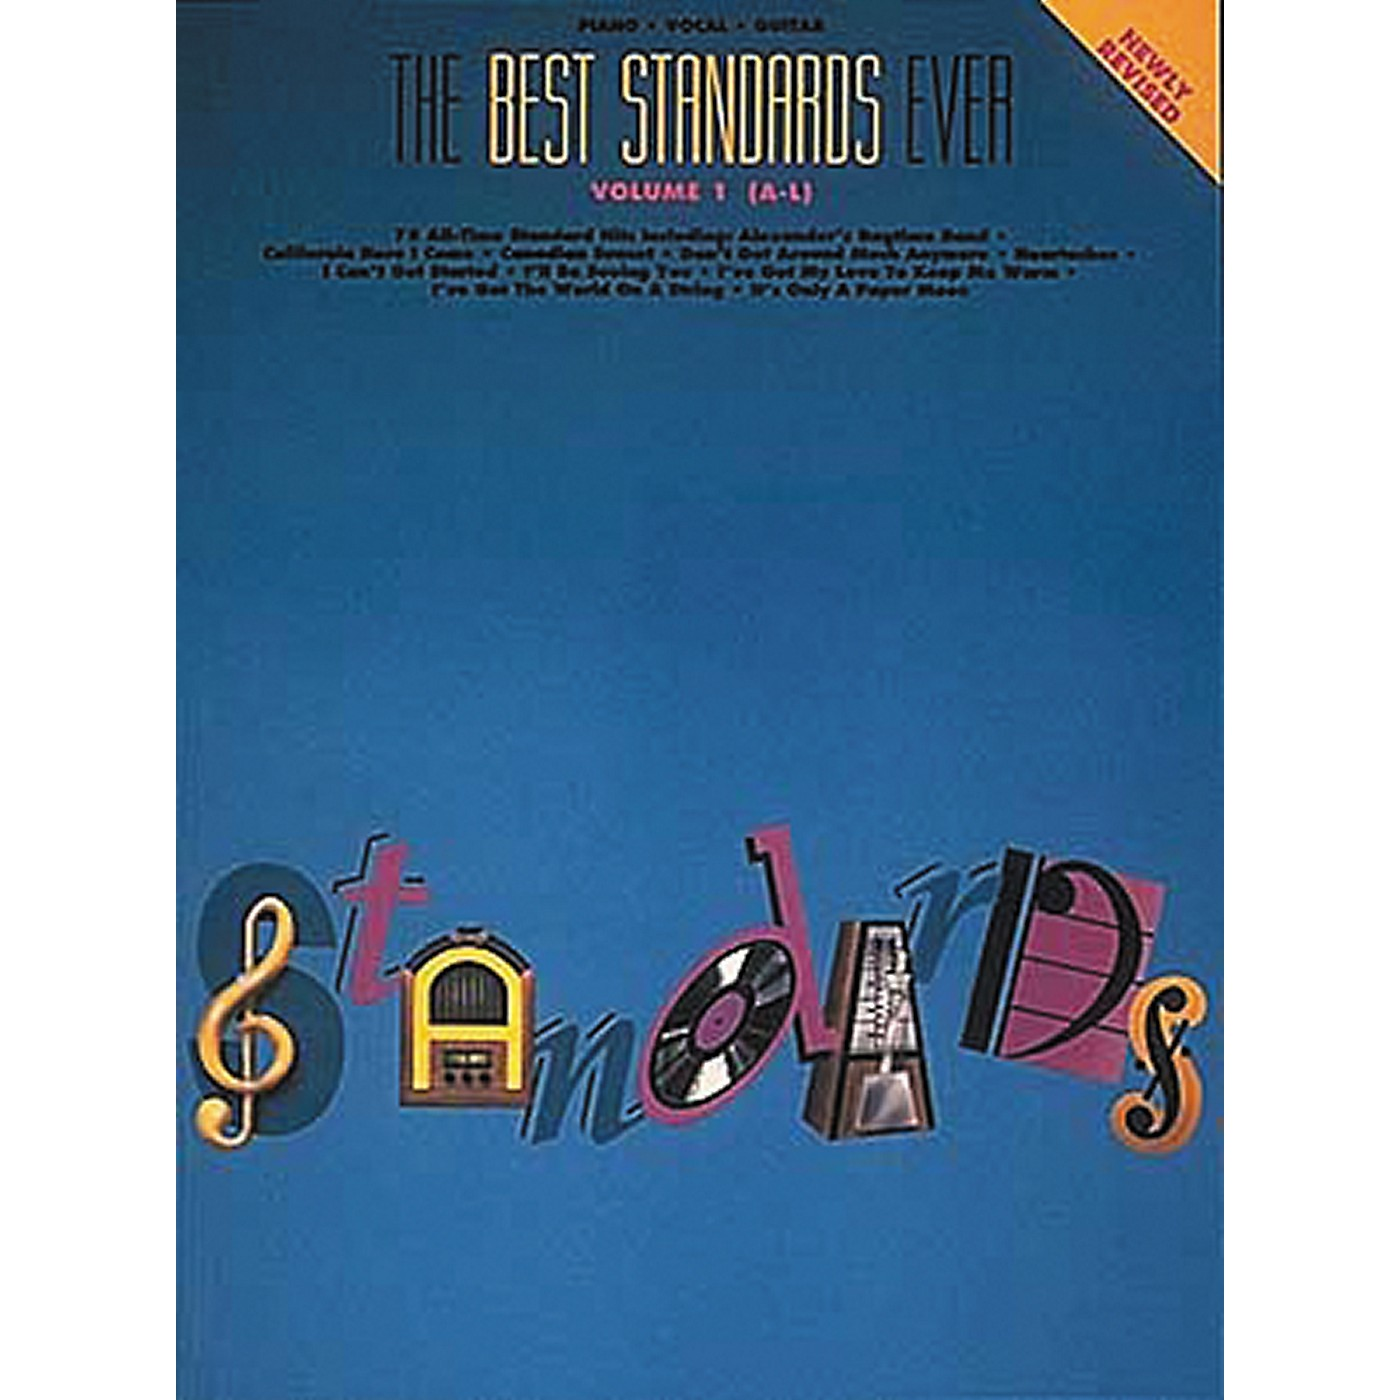 Hal Leonard The Best Standards Ever Volume 1 A-L Revised Piano, Vocal, Guitar Songbook thumbnail